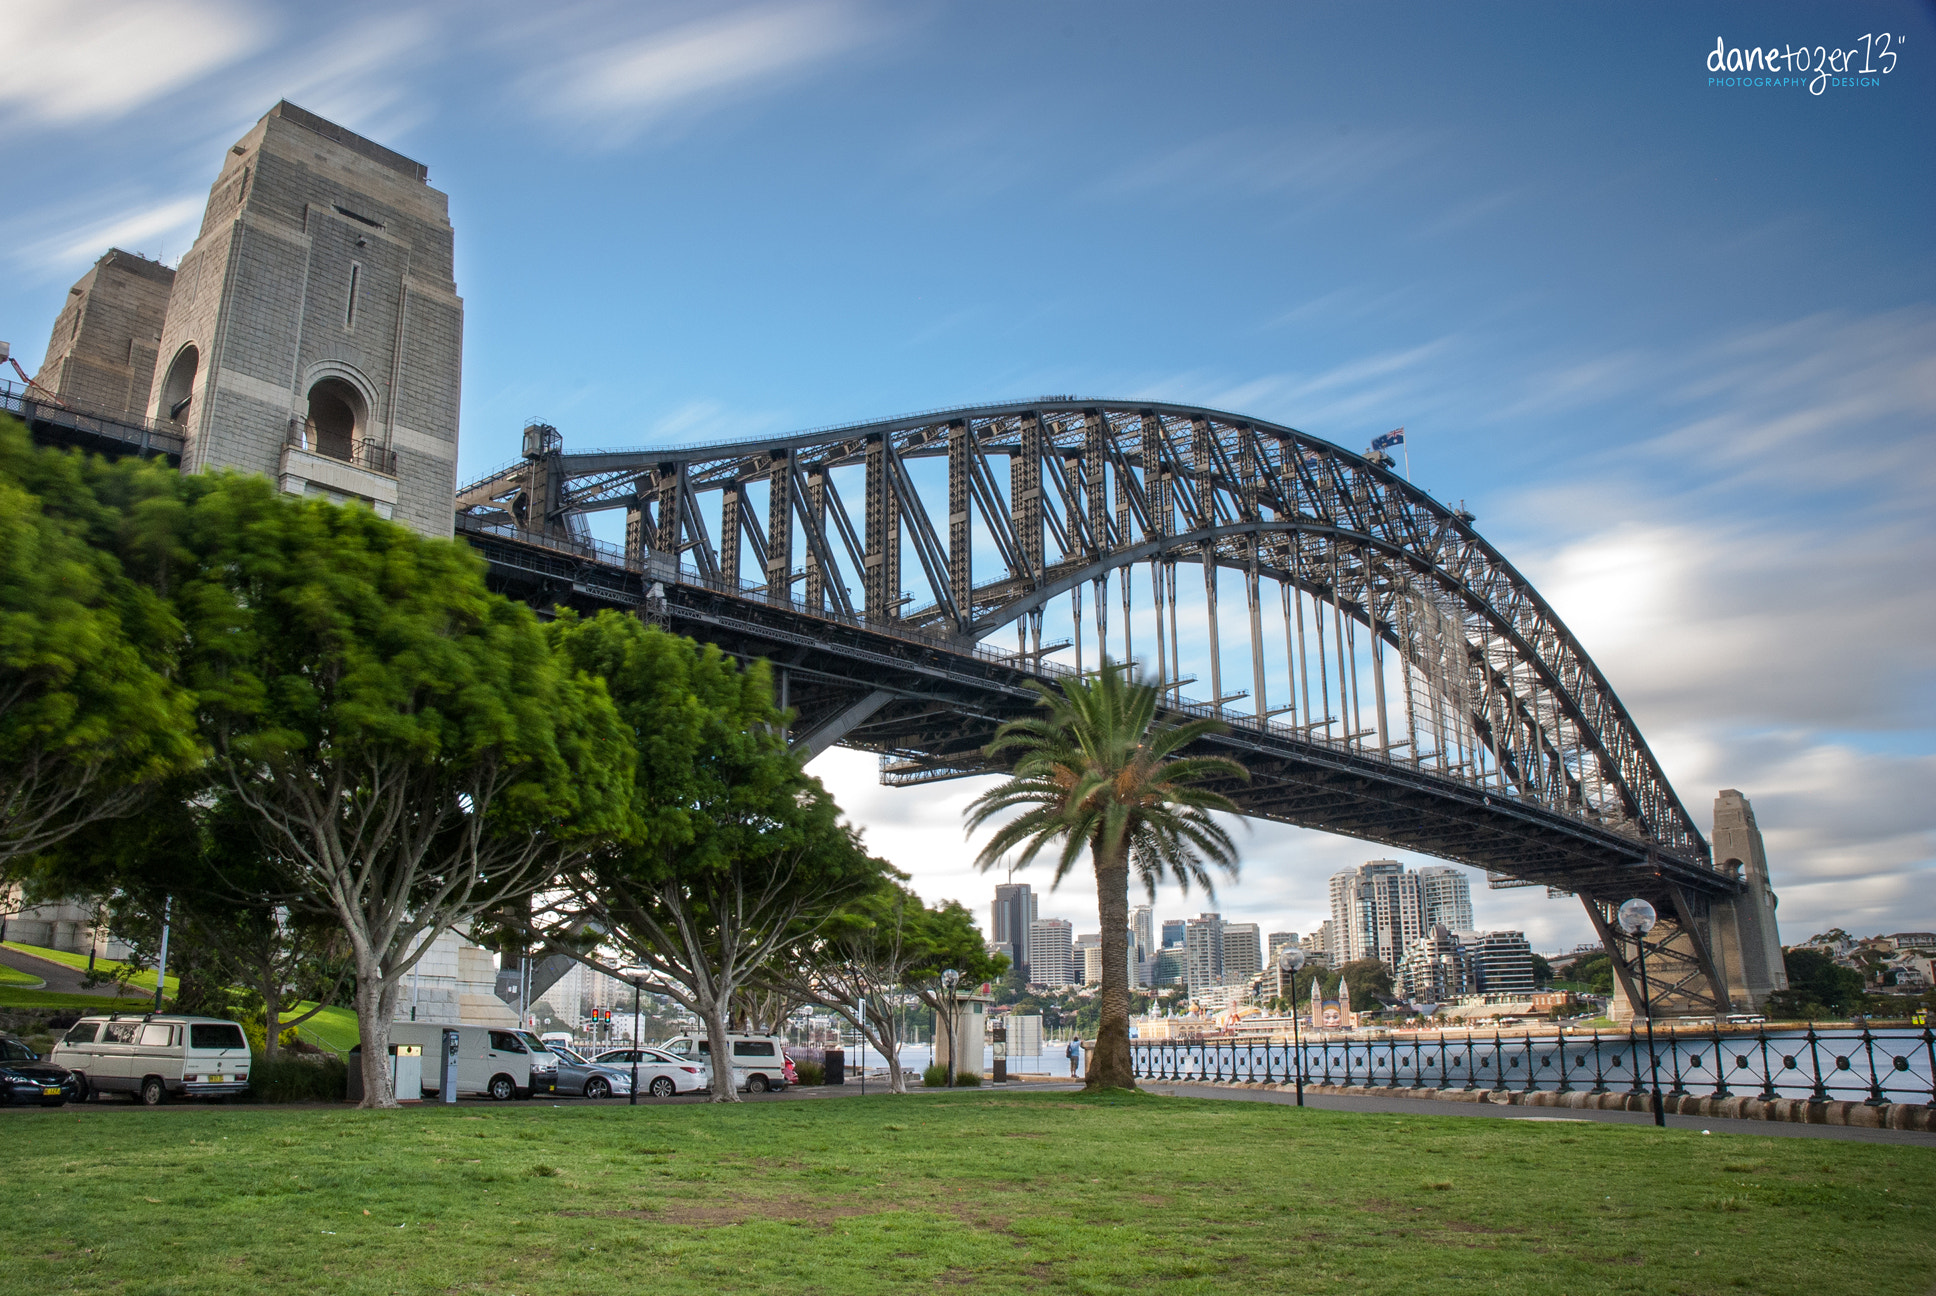 Photograph Harbour Bridge by Dane Tozer on 500px